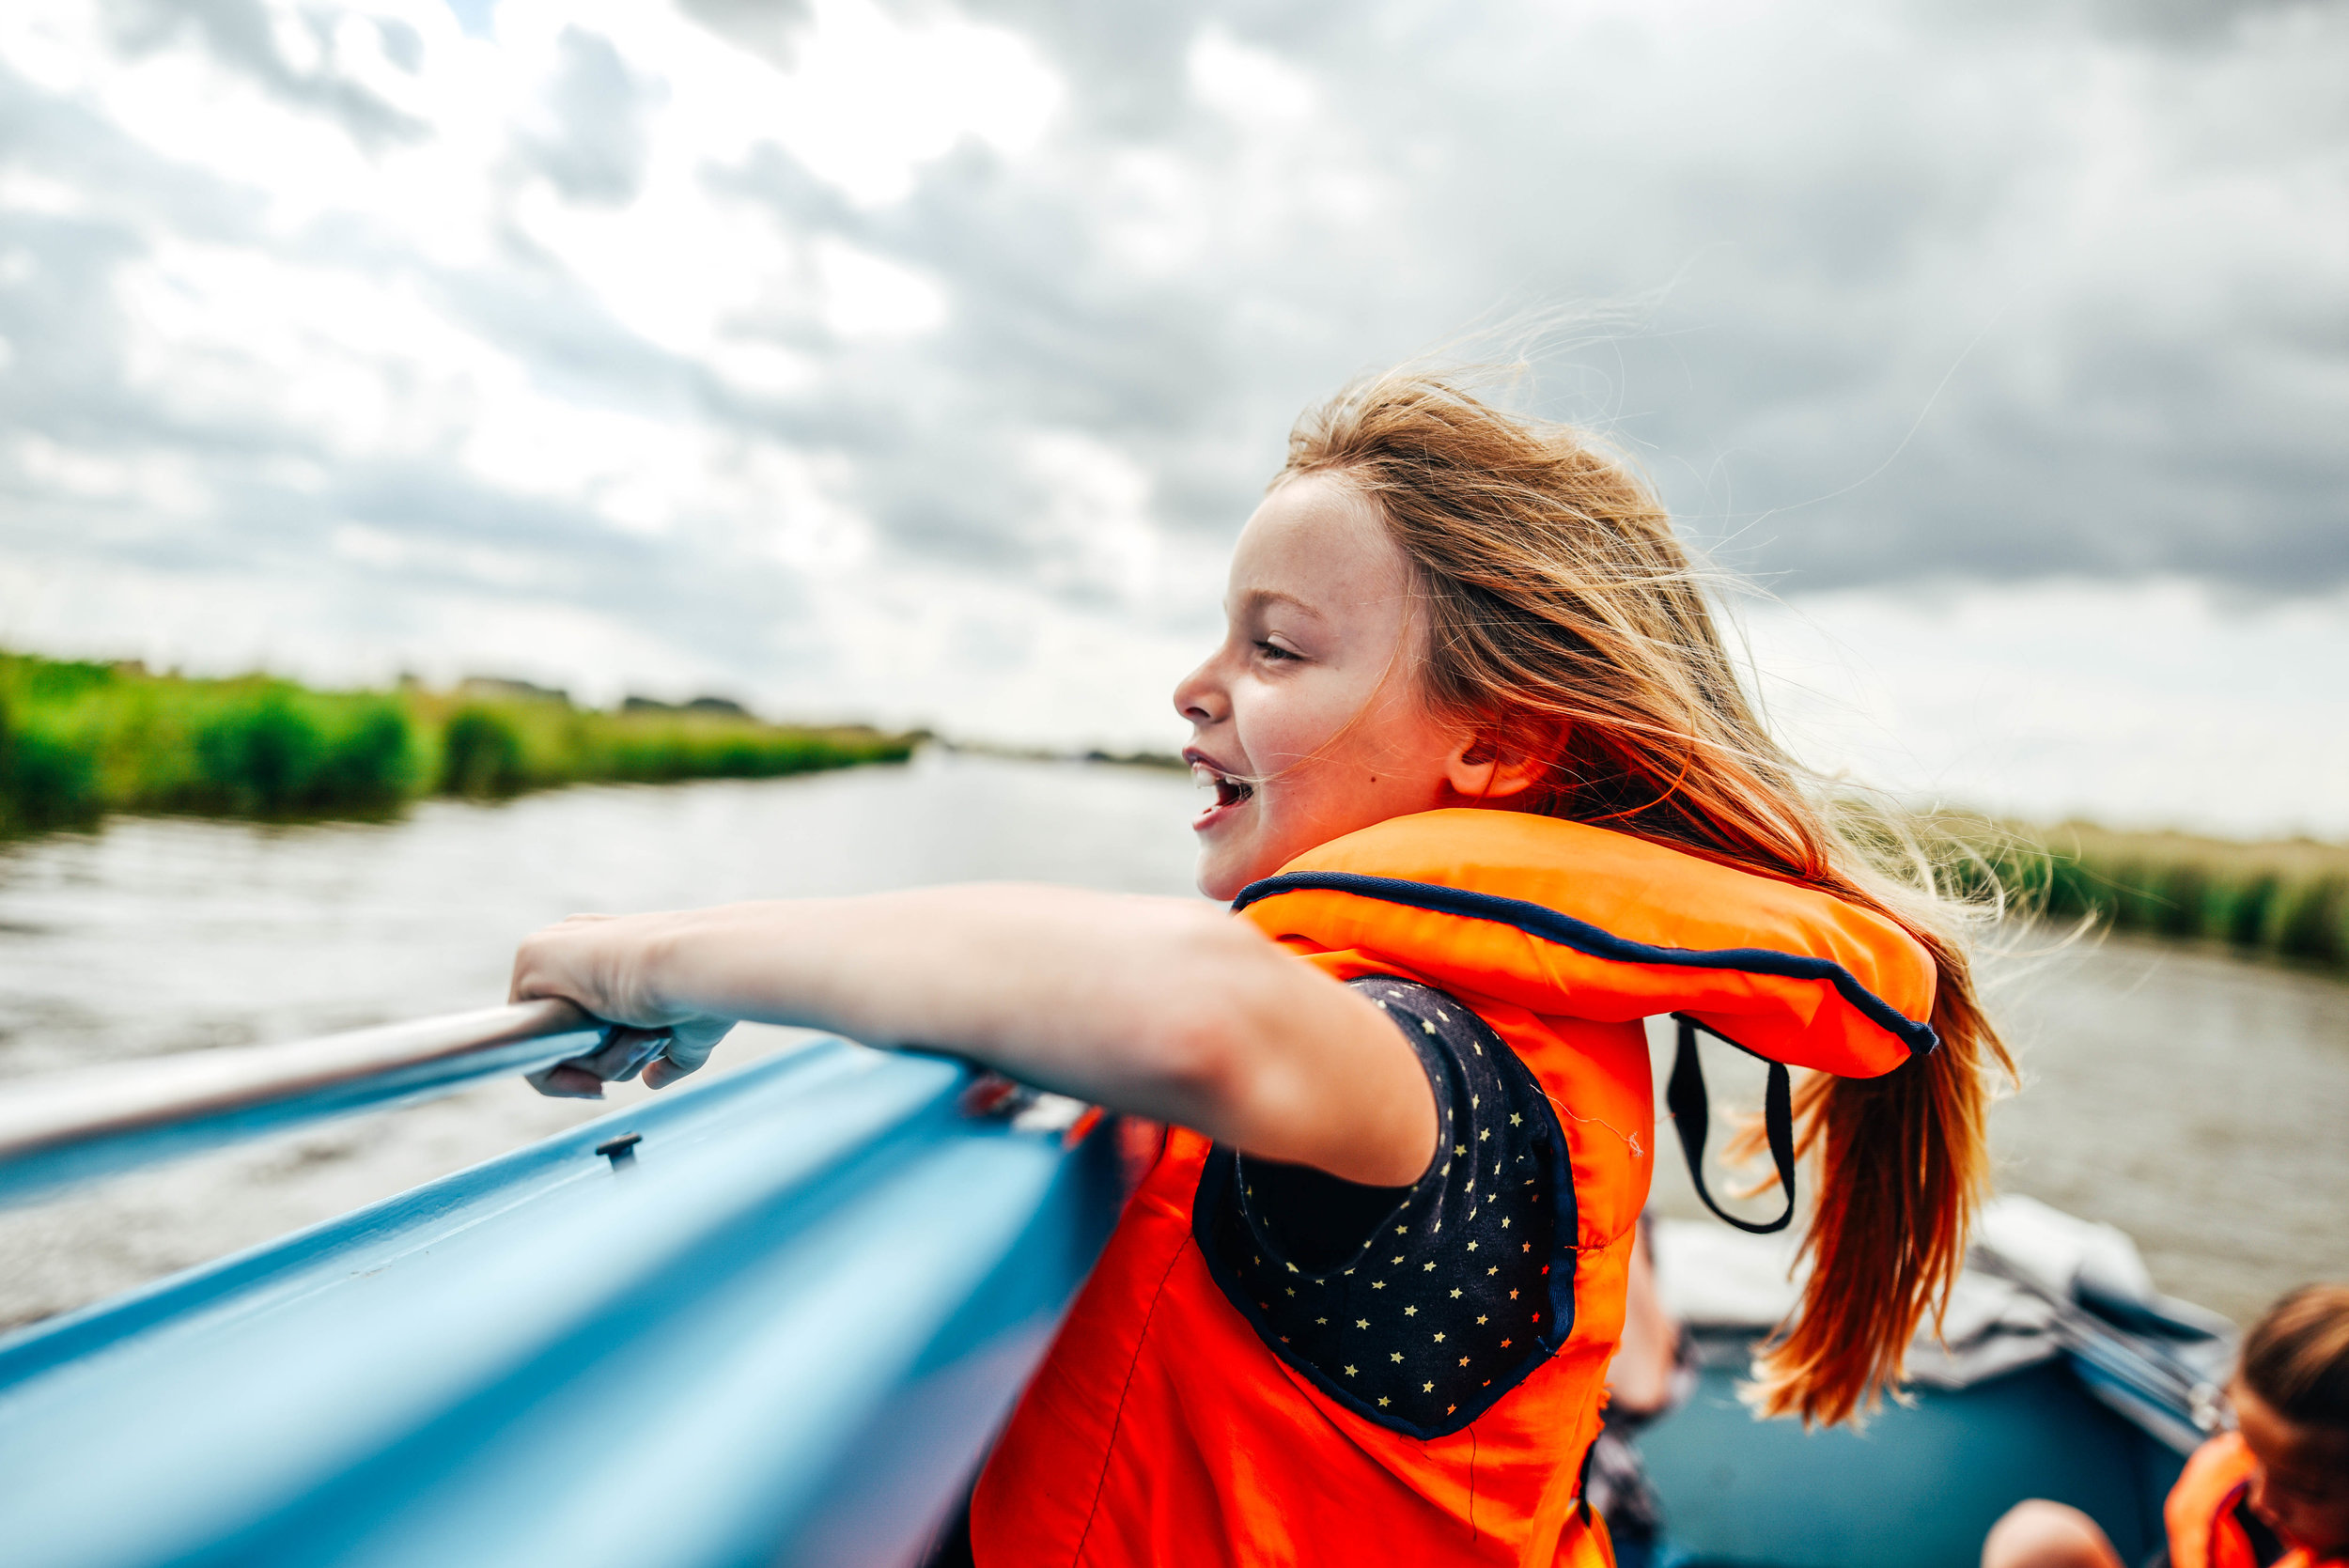 Little girl in life jacket on river boat Essex UK Documentary Lifestyle Portrait Photographer